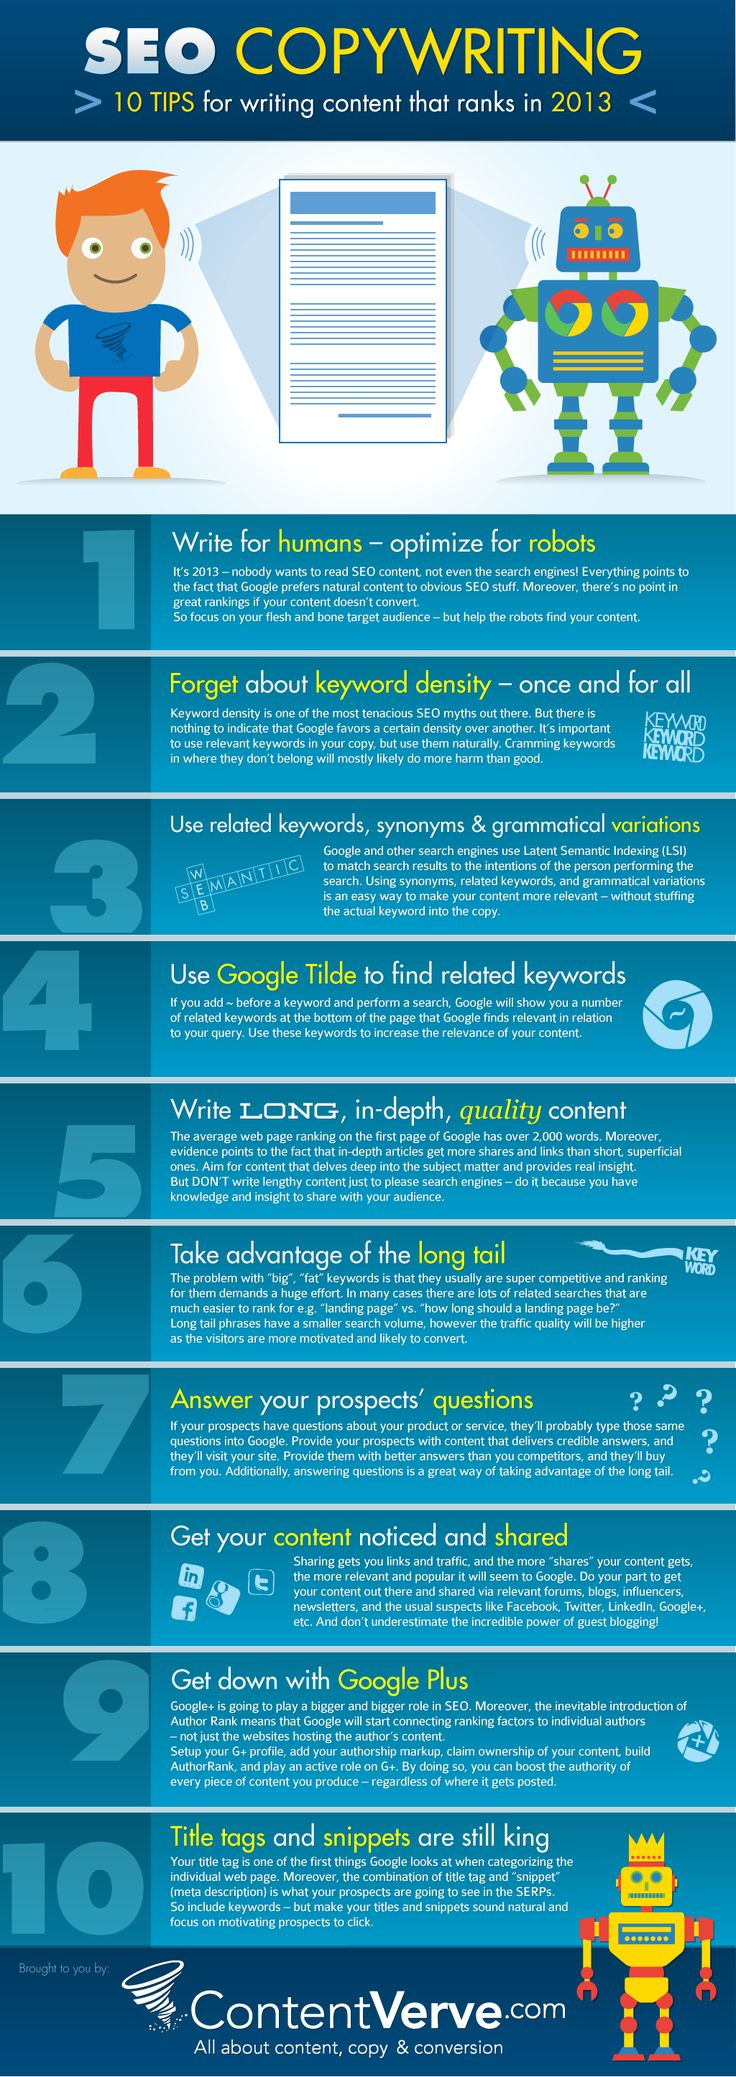 Along with many other factors of SEO, copy is also an important aspect. But due to frequent updates in Google algorithm, many of the old tactics don't give result anymore. Moreover, it is quite difficult to keep an eye on what really does work. So to help you out, here is a cool infographic on SEO Copywriting in 2013 - how to write content that ranks well in search engines.   http://www.digitalinformationworld.com/2013/04/how-to-write-content-that-ranks-well-in.html   #SEO